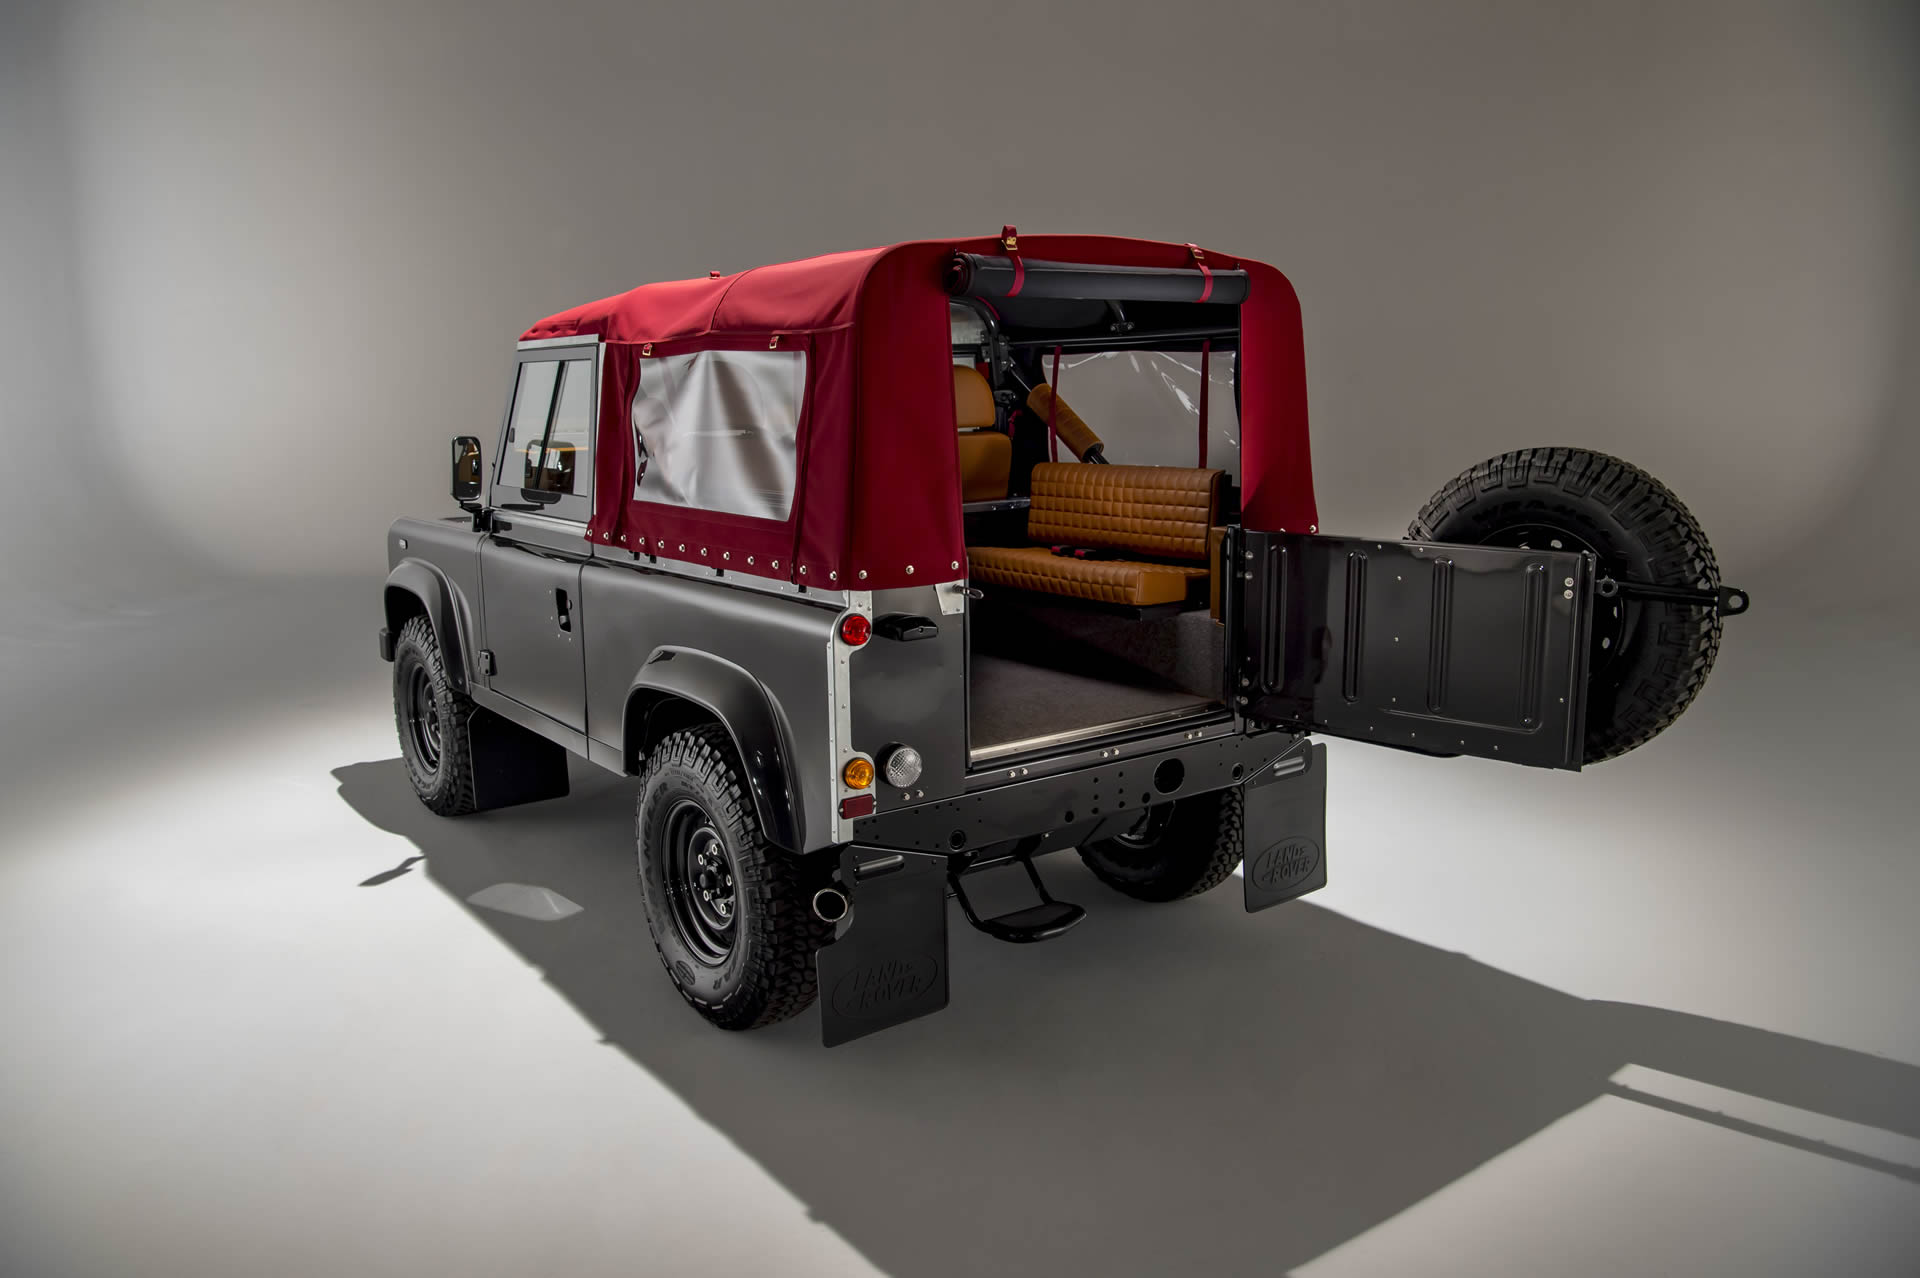 The final step of ACHSV custom vehicle builds is choosing the perfect colour for your new, bespoke Land Rover.